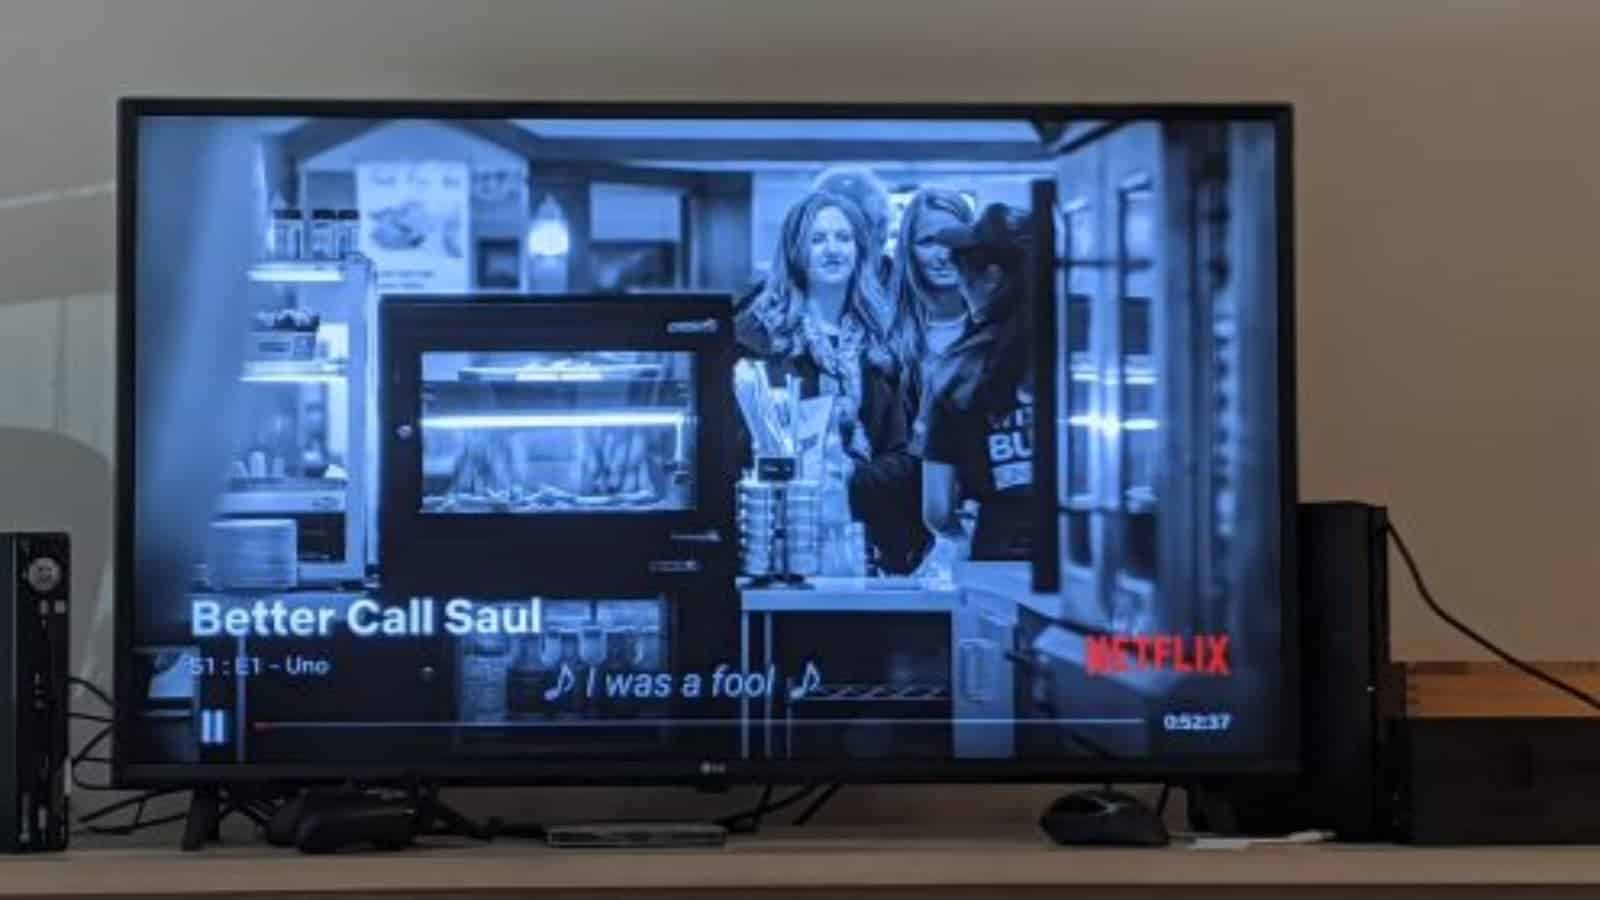 netflix chromecast redesign 2 from 9to5Google